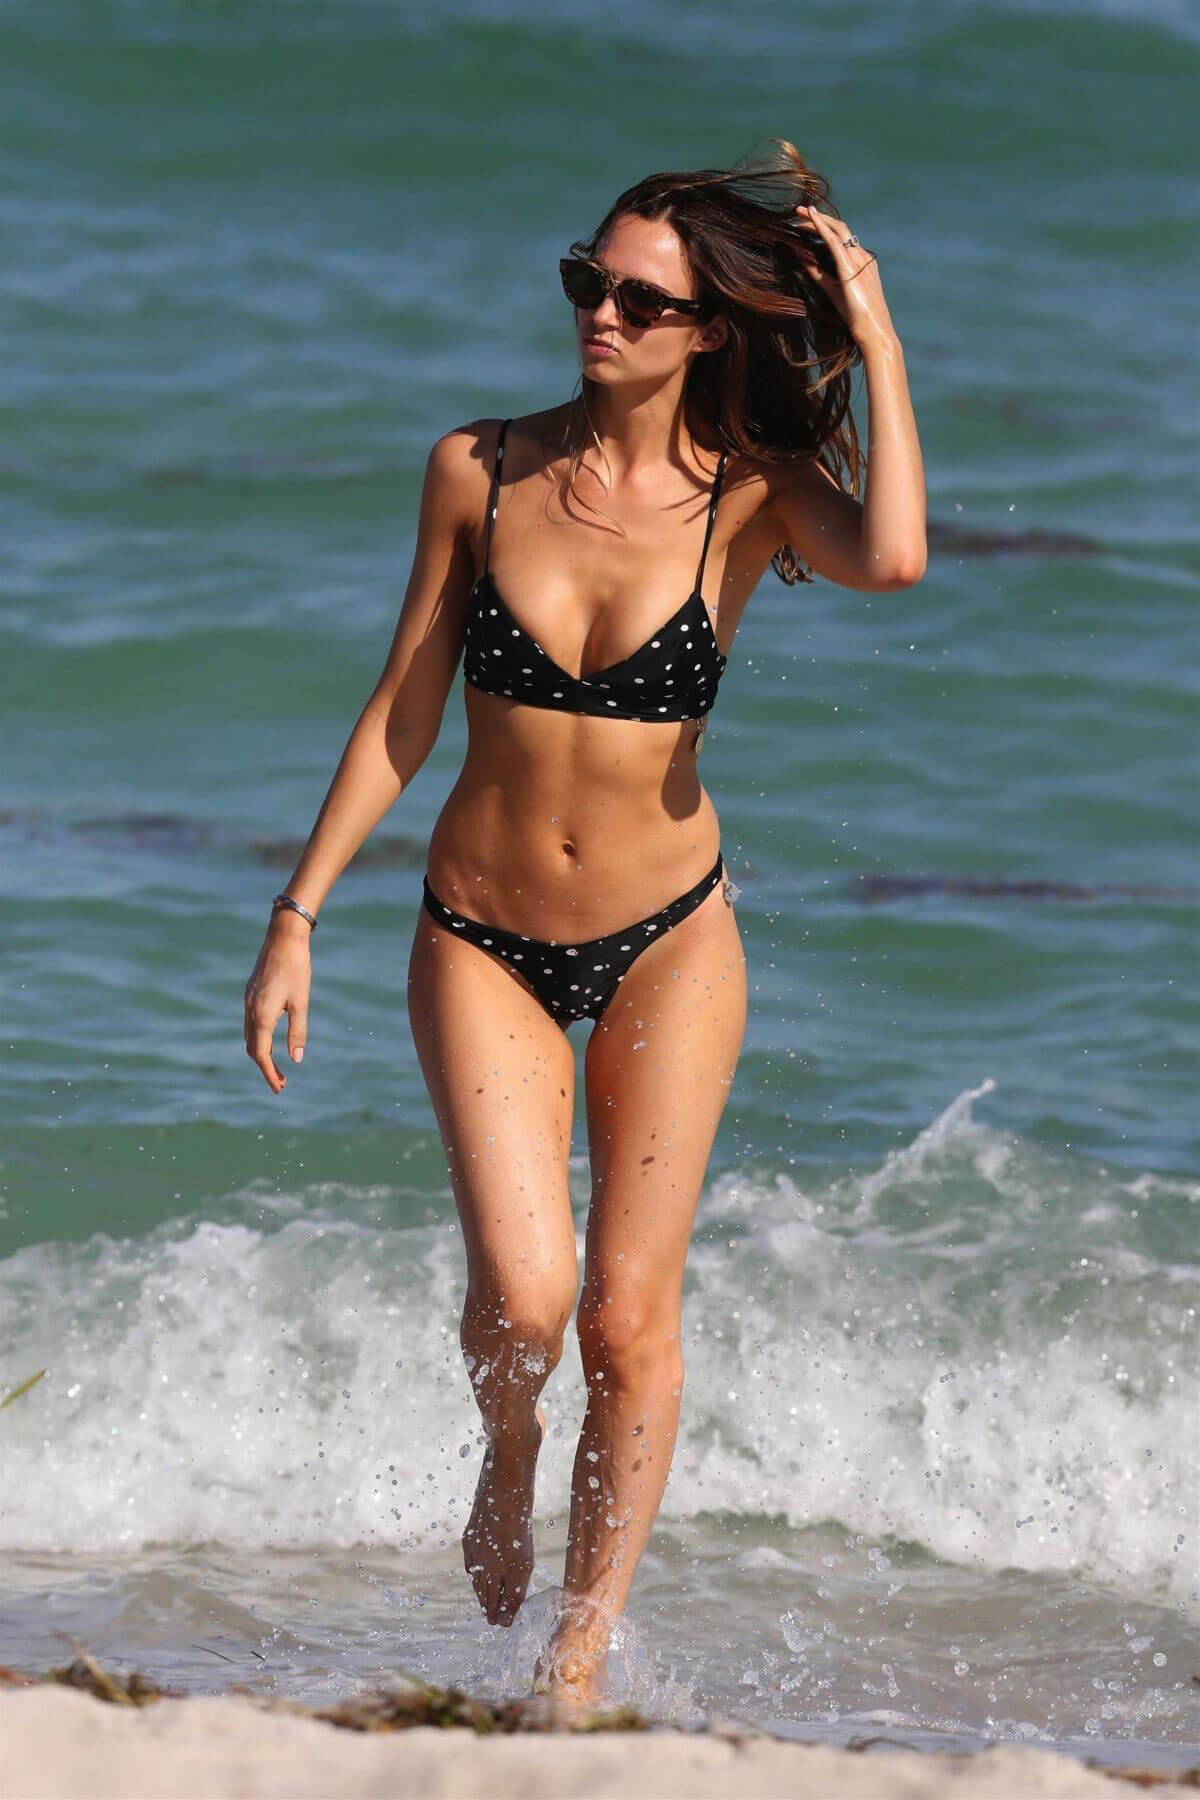 Alice Amelie wears Black Dotted Bikini at a Beach in Miami, November 2017